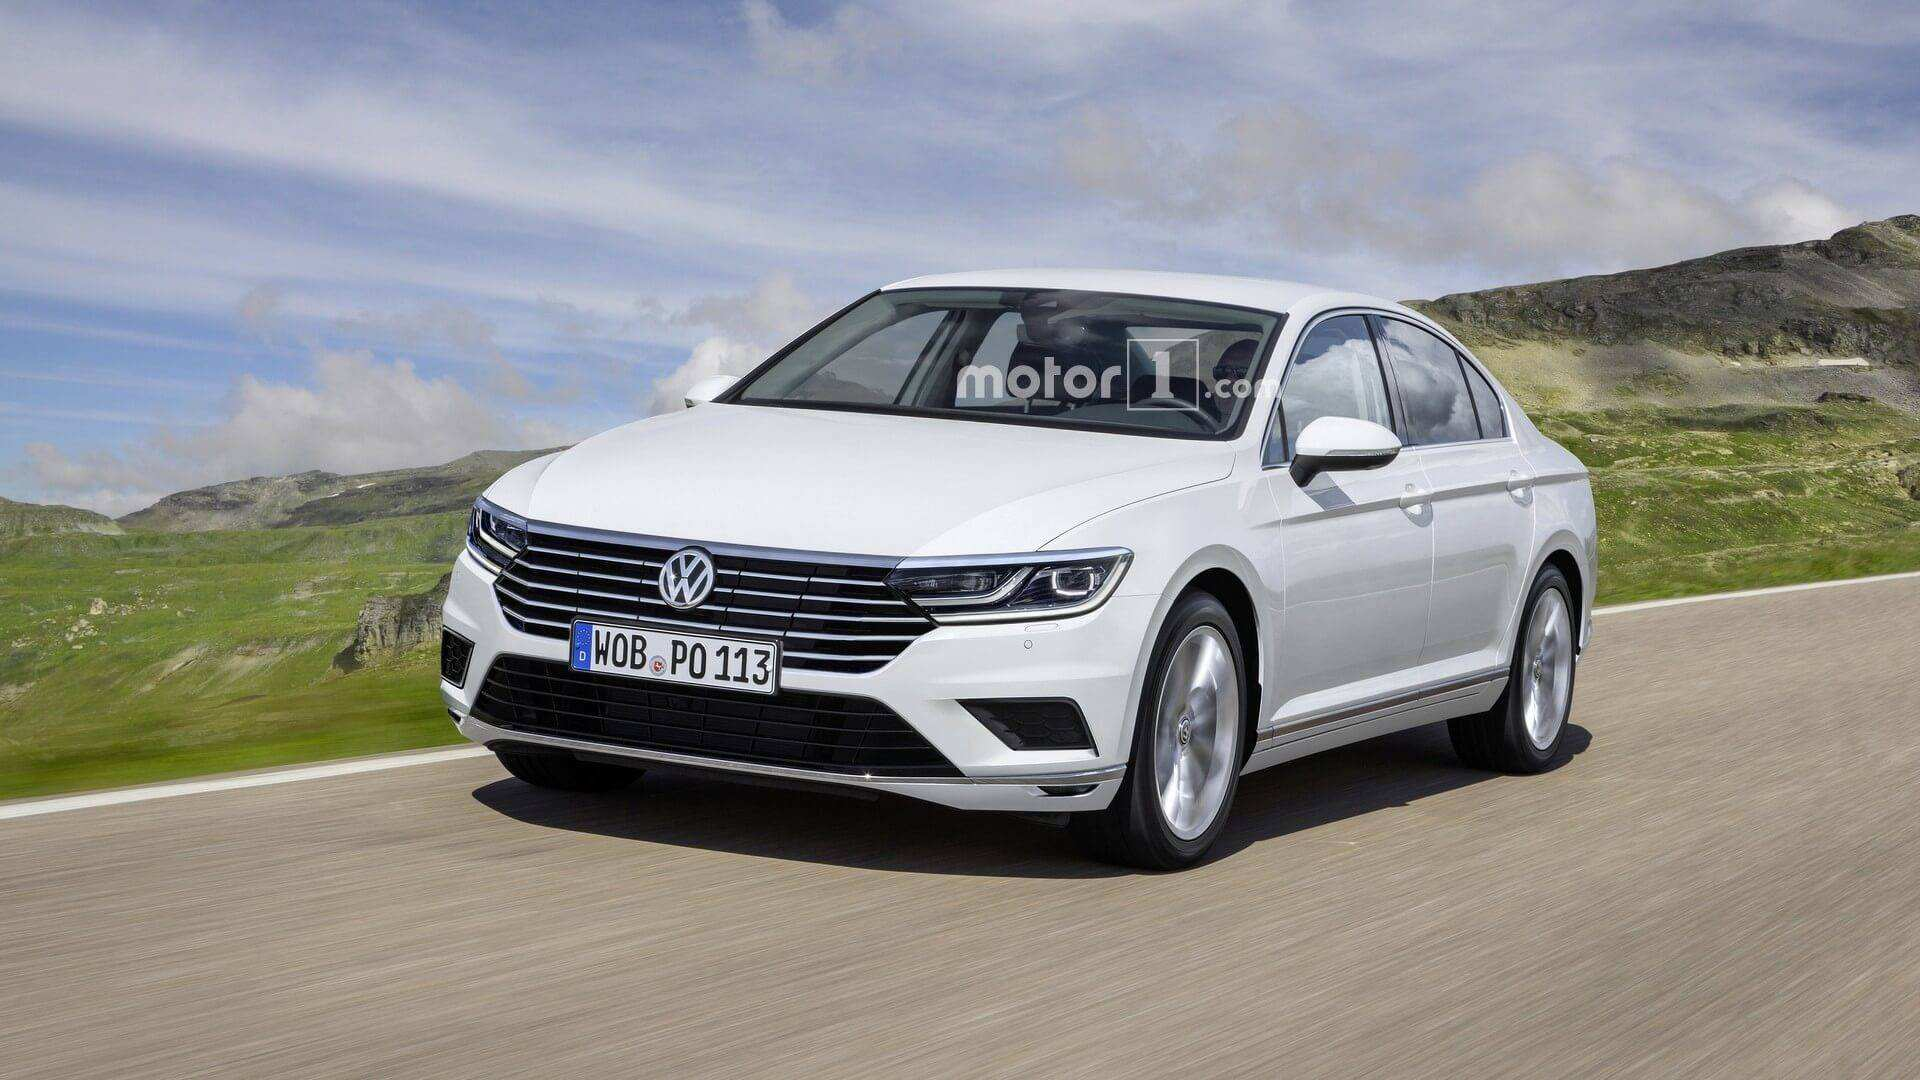 89 The Best 2019 Vw Passat Style